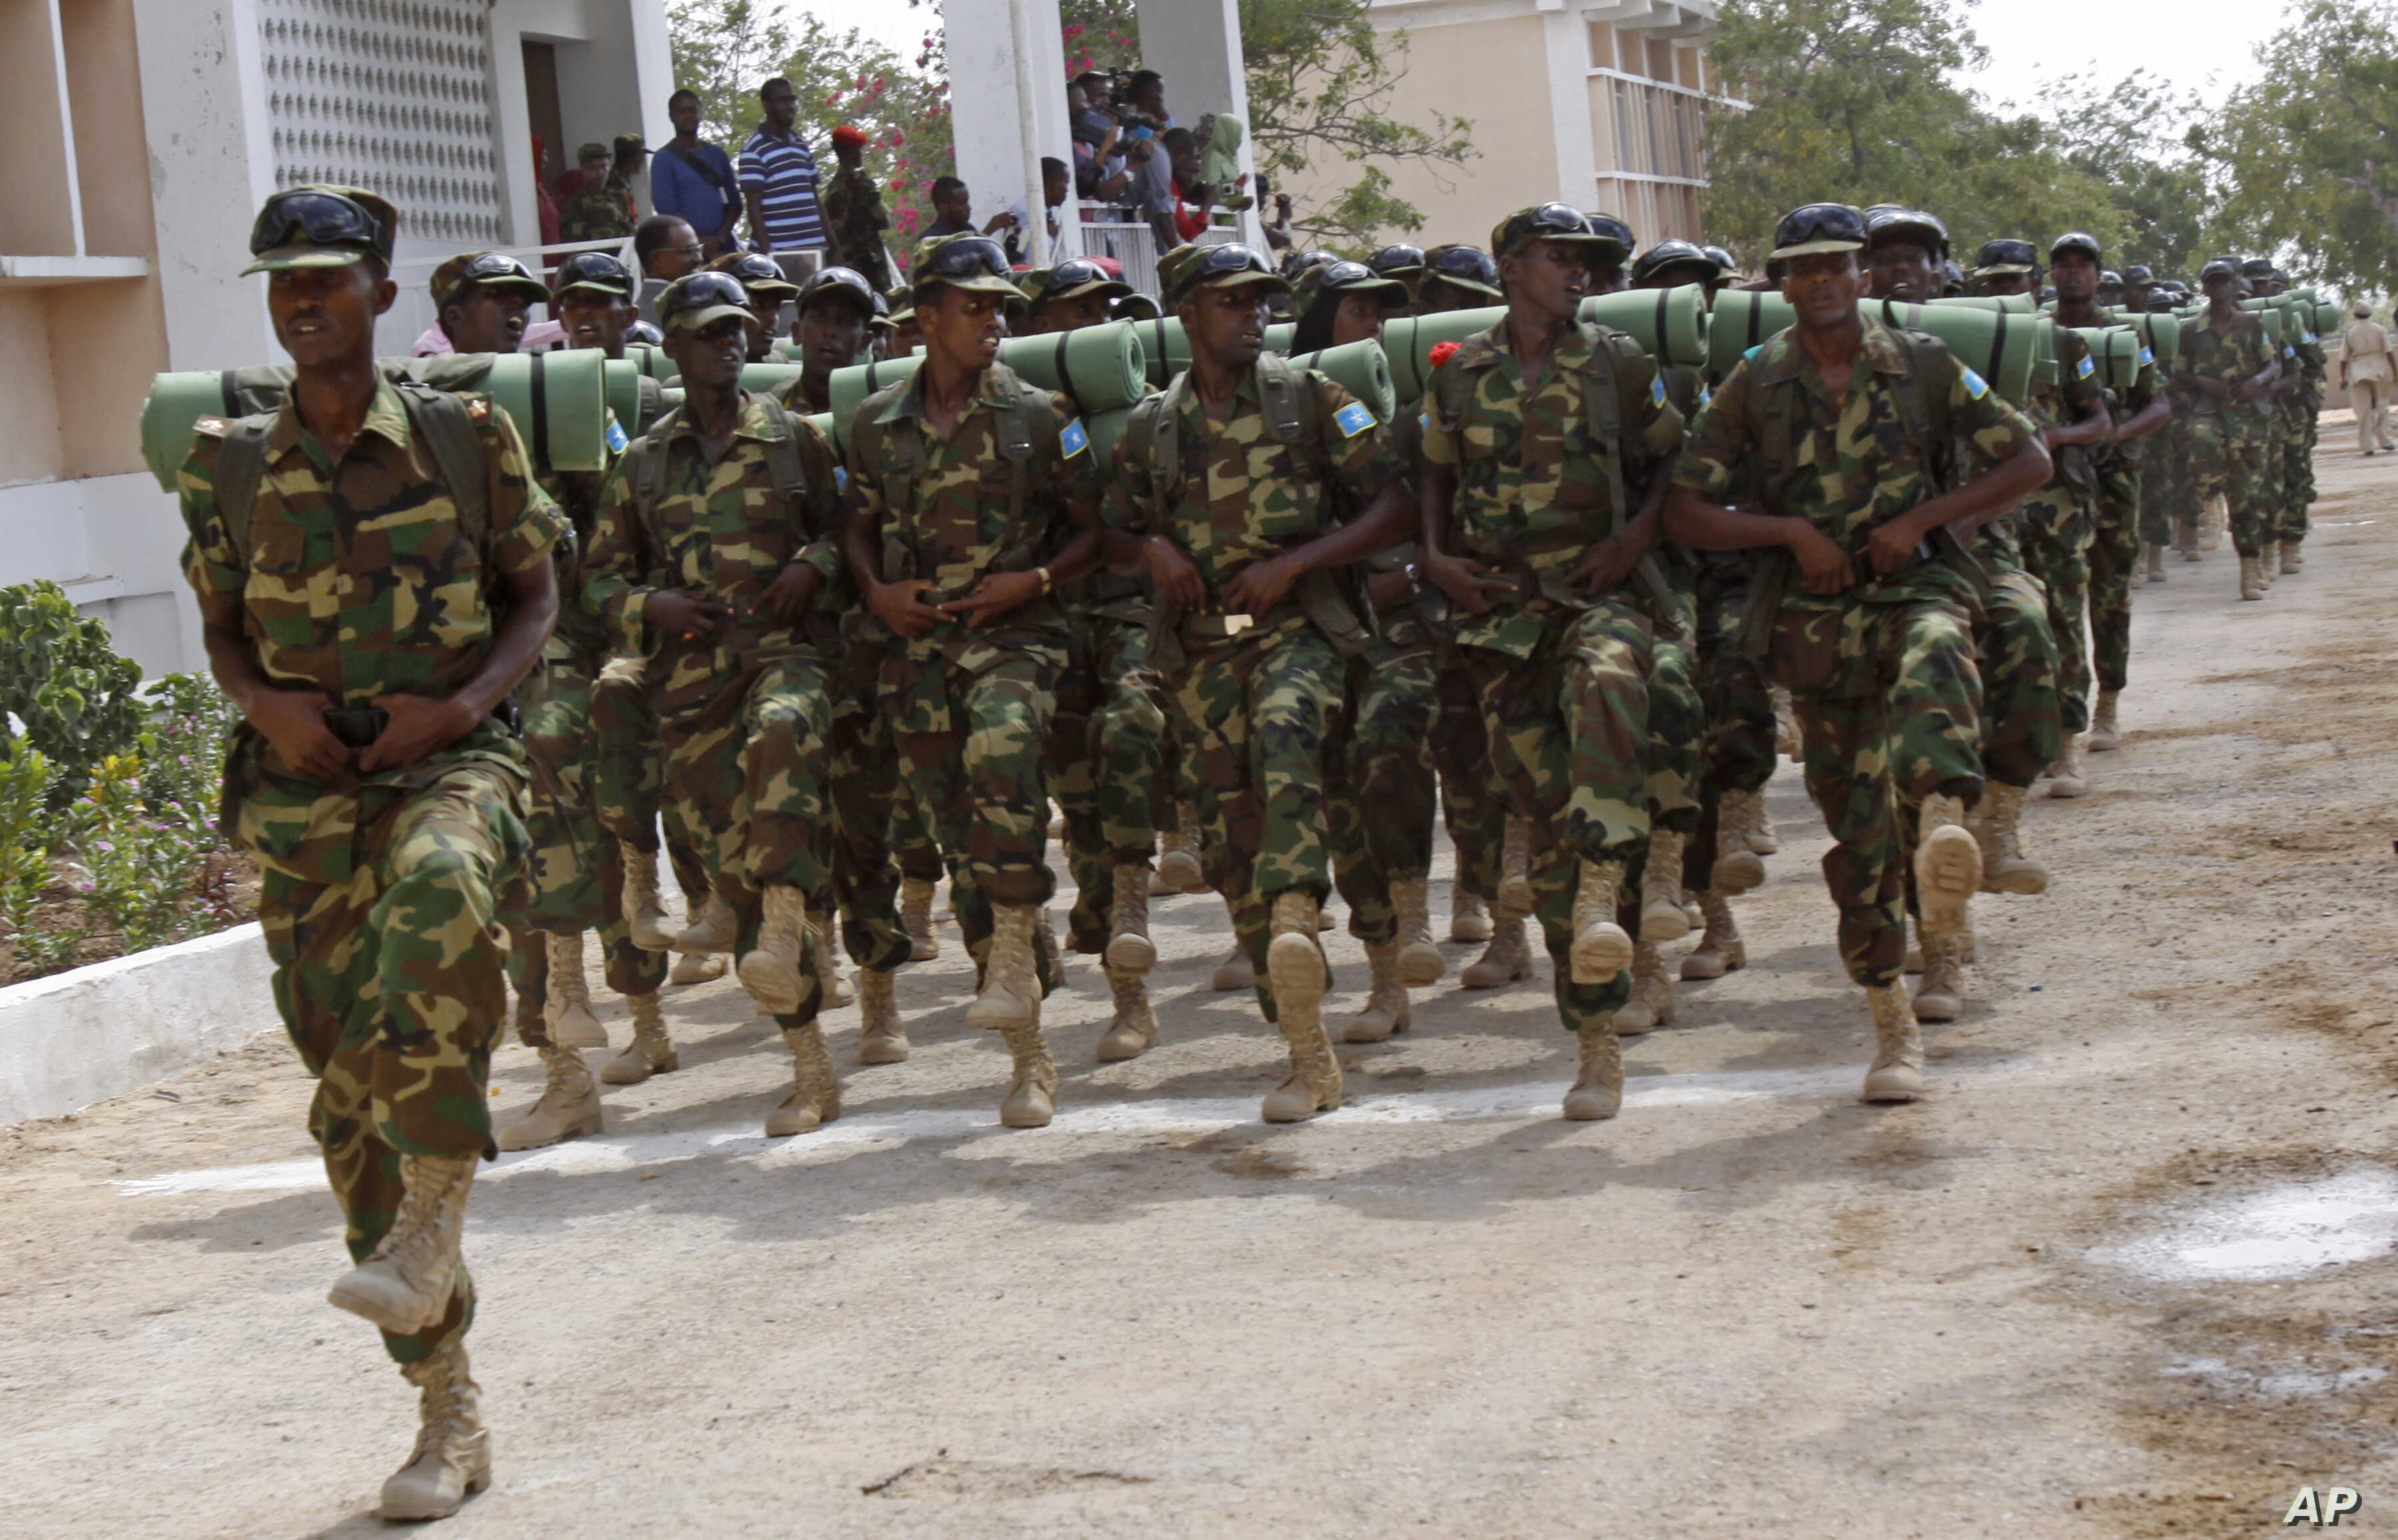 FILE - Somali soldiers march during the 54th anniversary of Somali National Army Day in Mogadishu, Somalia.